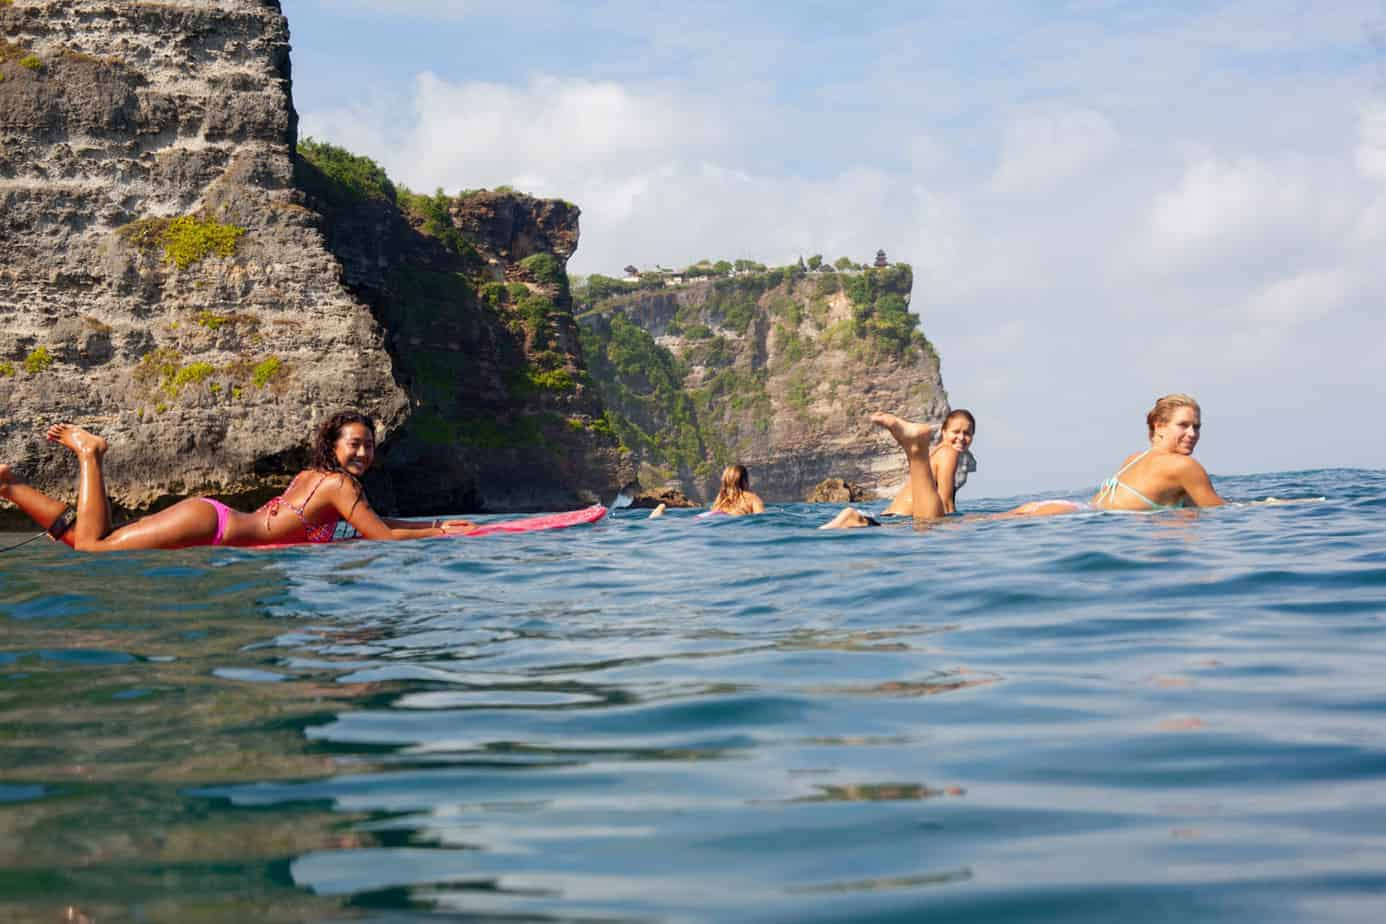 Girls surfing at Uluwatu, Bali, Indonesia